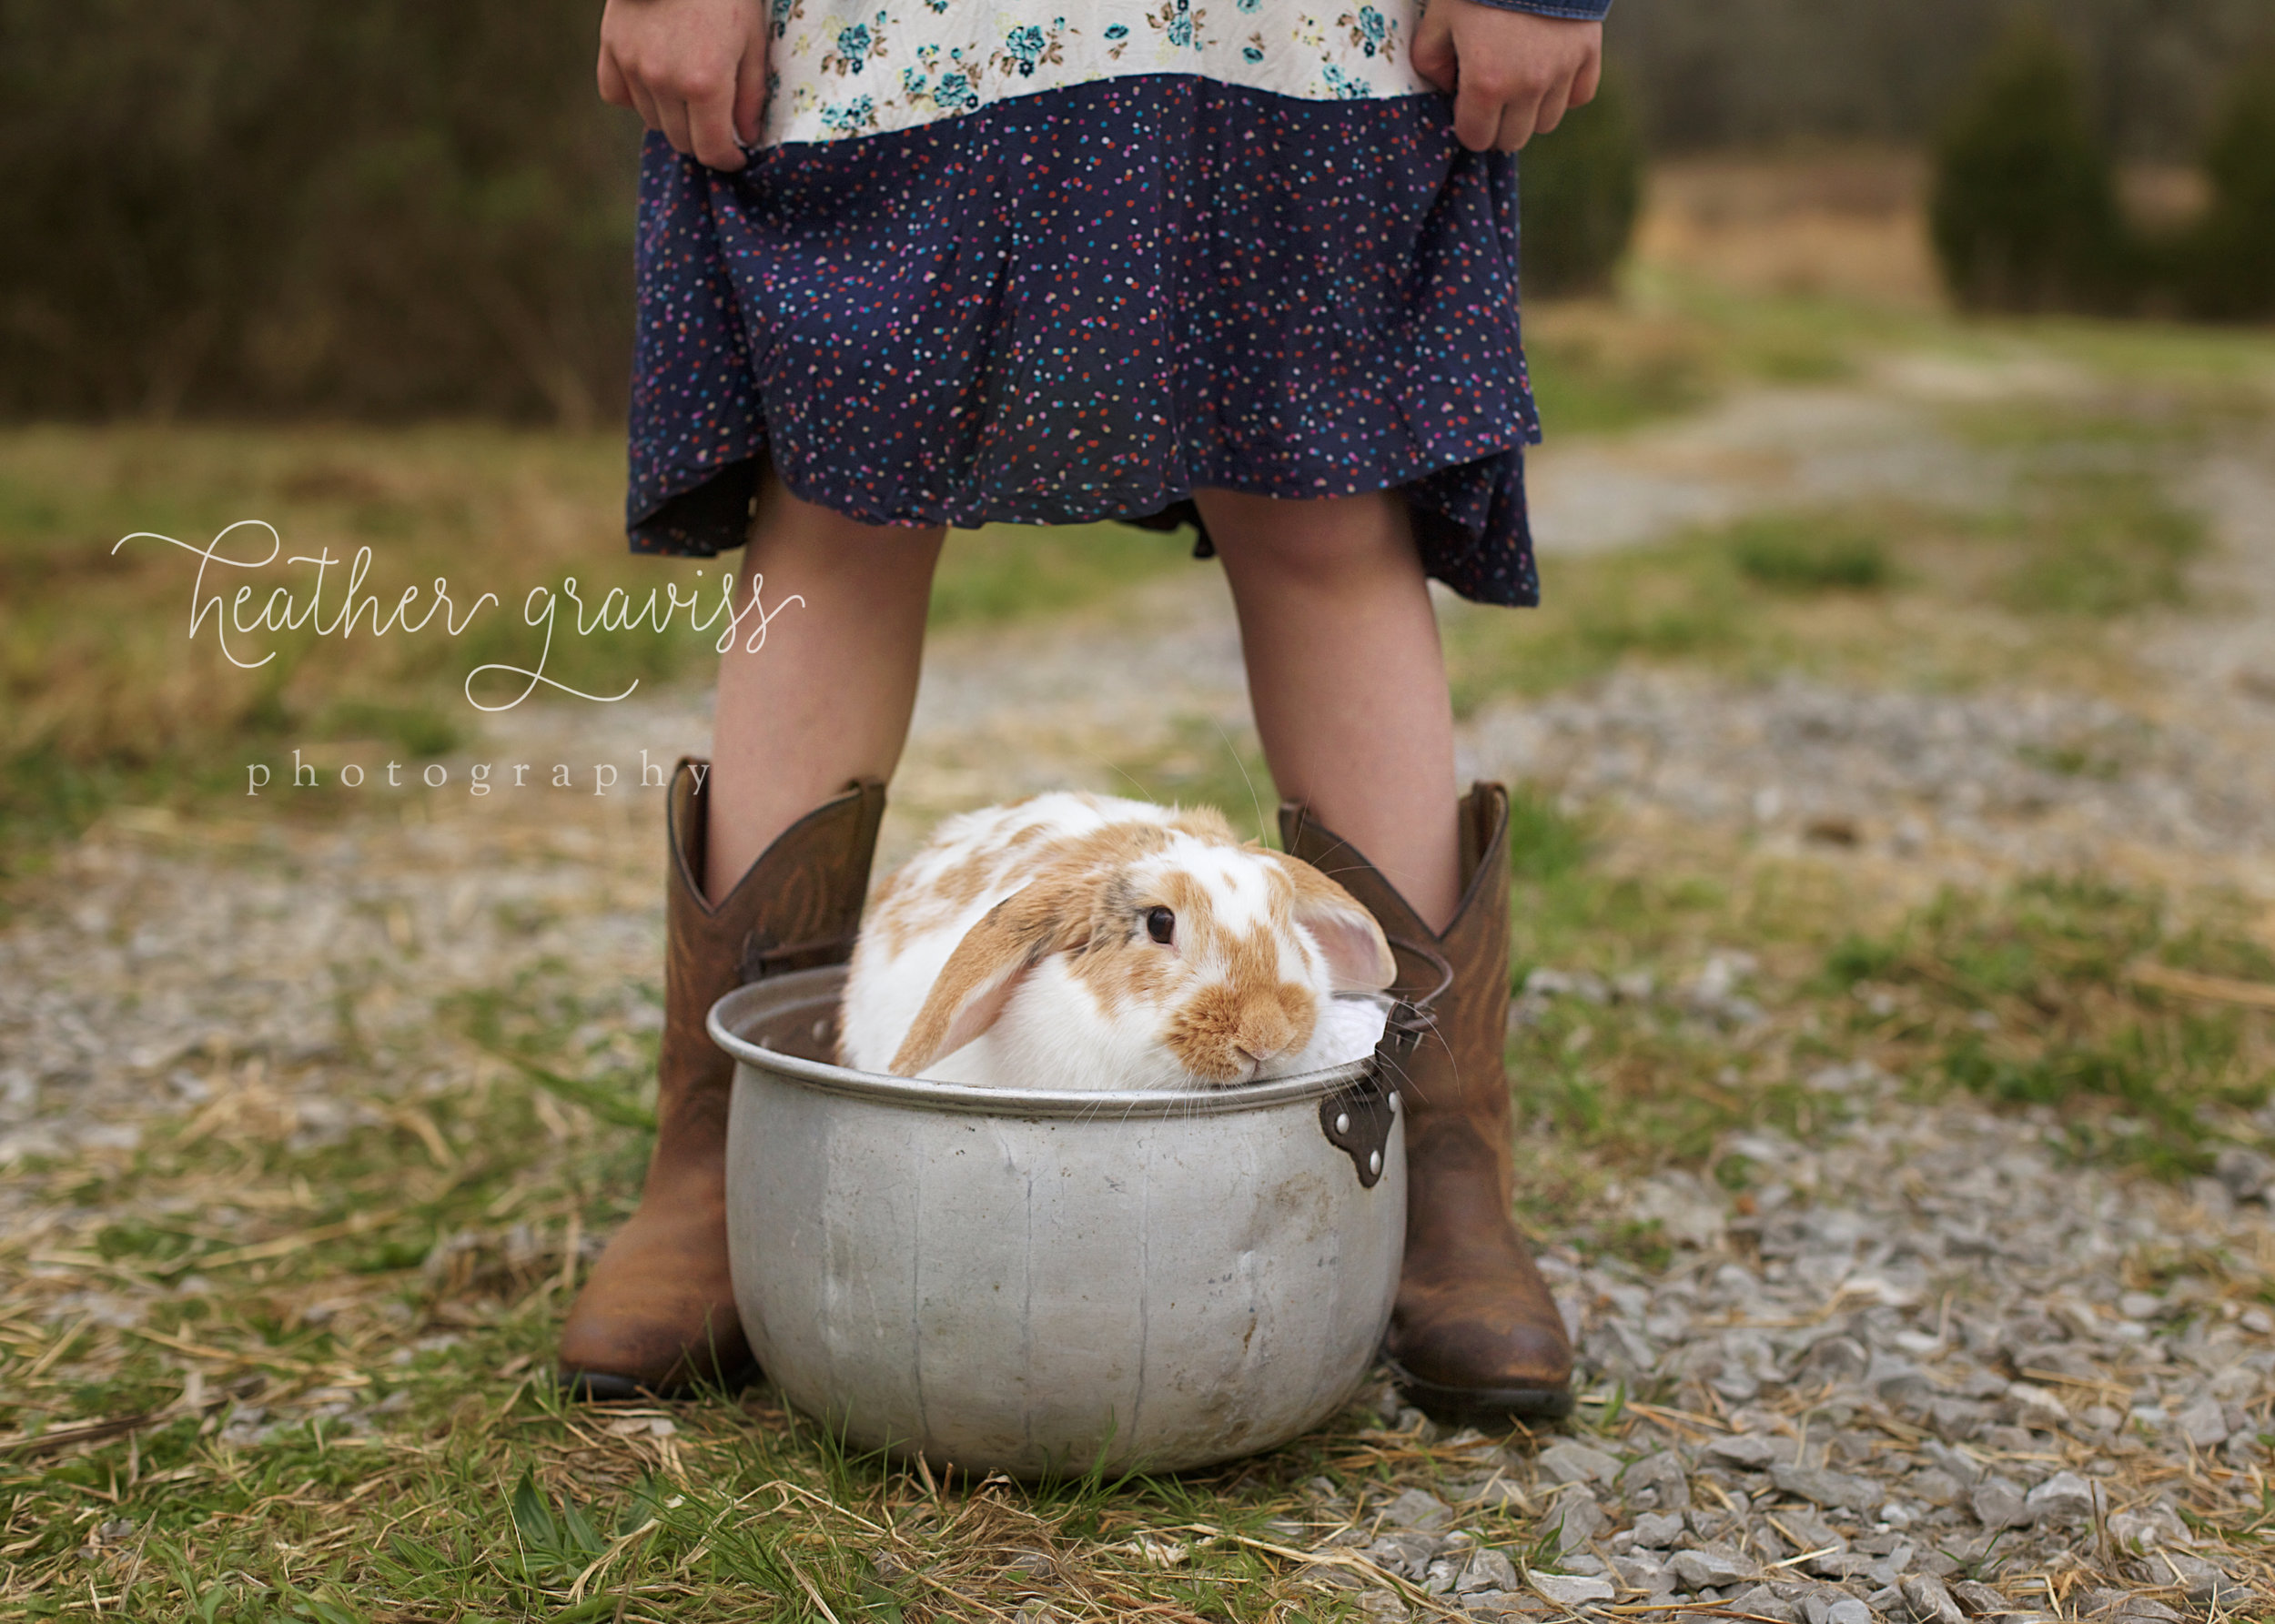 bunny-in-a-bucket.jpg